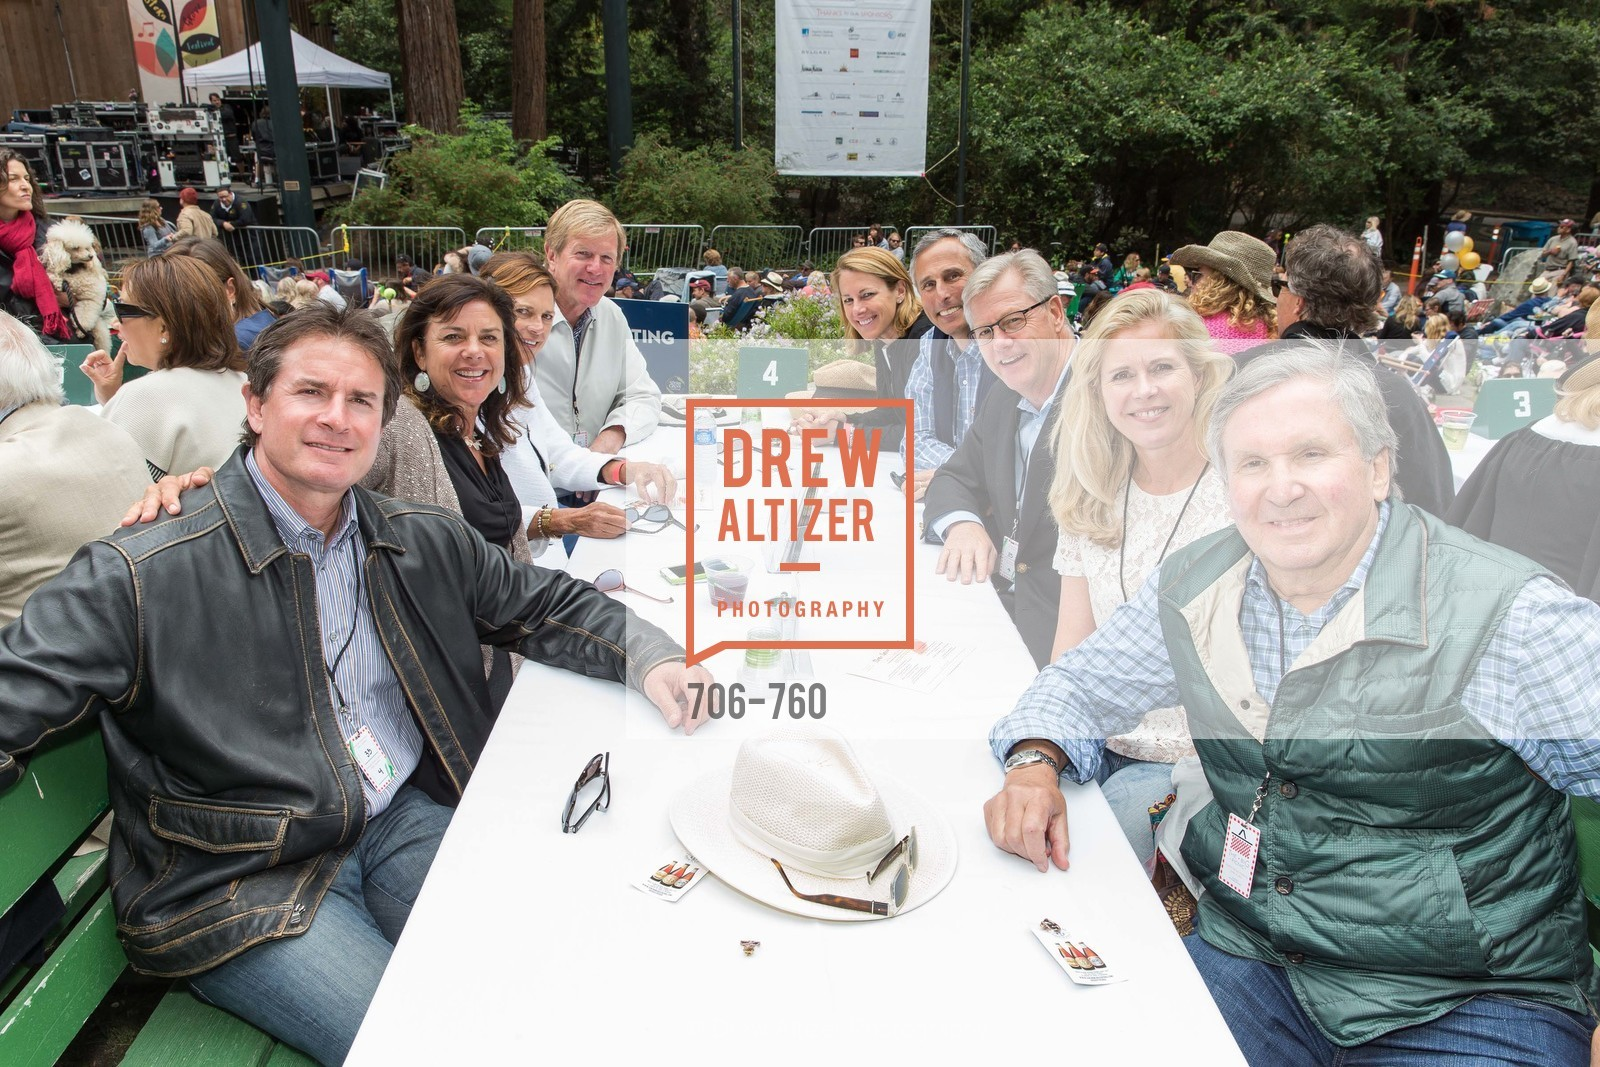 Larry Solomon, Connie Ring, Lisa Troedson, Jack Troedson, Bill Ring, Shawn Byers, Brook Byers, The Big Picnic! A Benefit & Concert for STERN GROVE FESTIVAL, US, June 14th, 2015,Drew Altizer, Drew Altizer Photography, full-service agency, private events, San Francisco photographer, photographer california